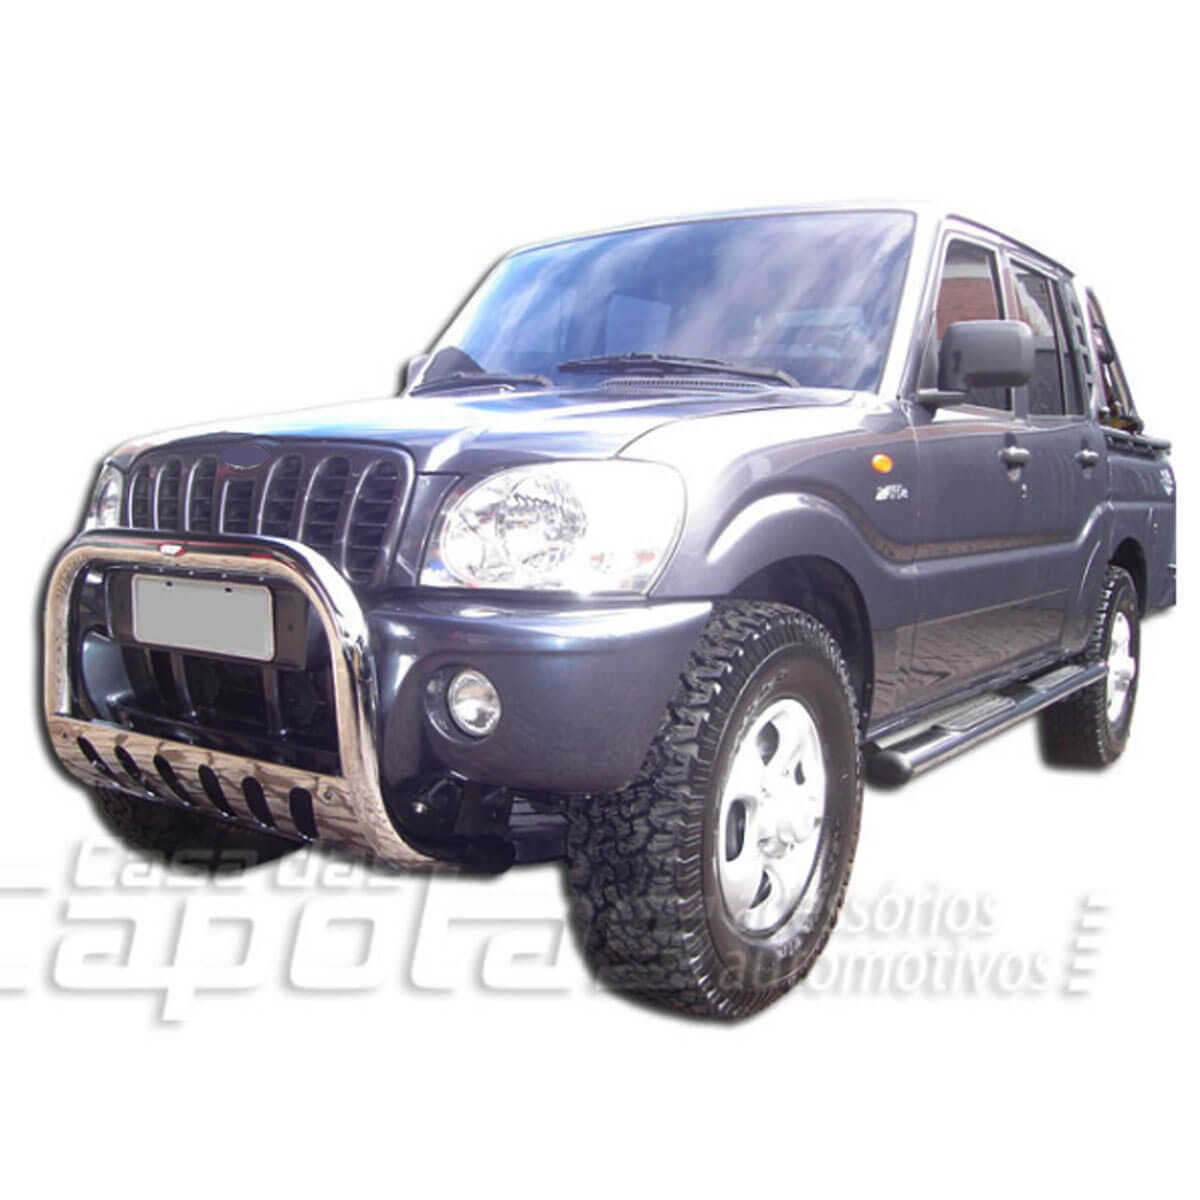 Parachoque impulsão Mahindra pick up ou SUV 2008 a 2014